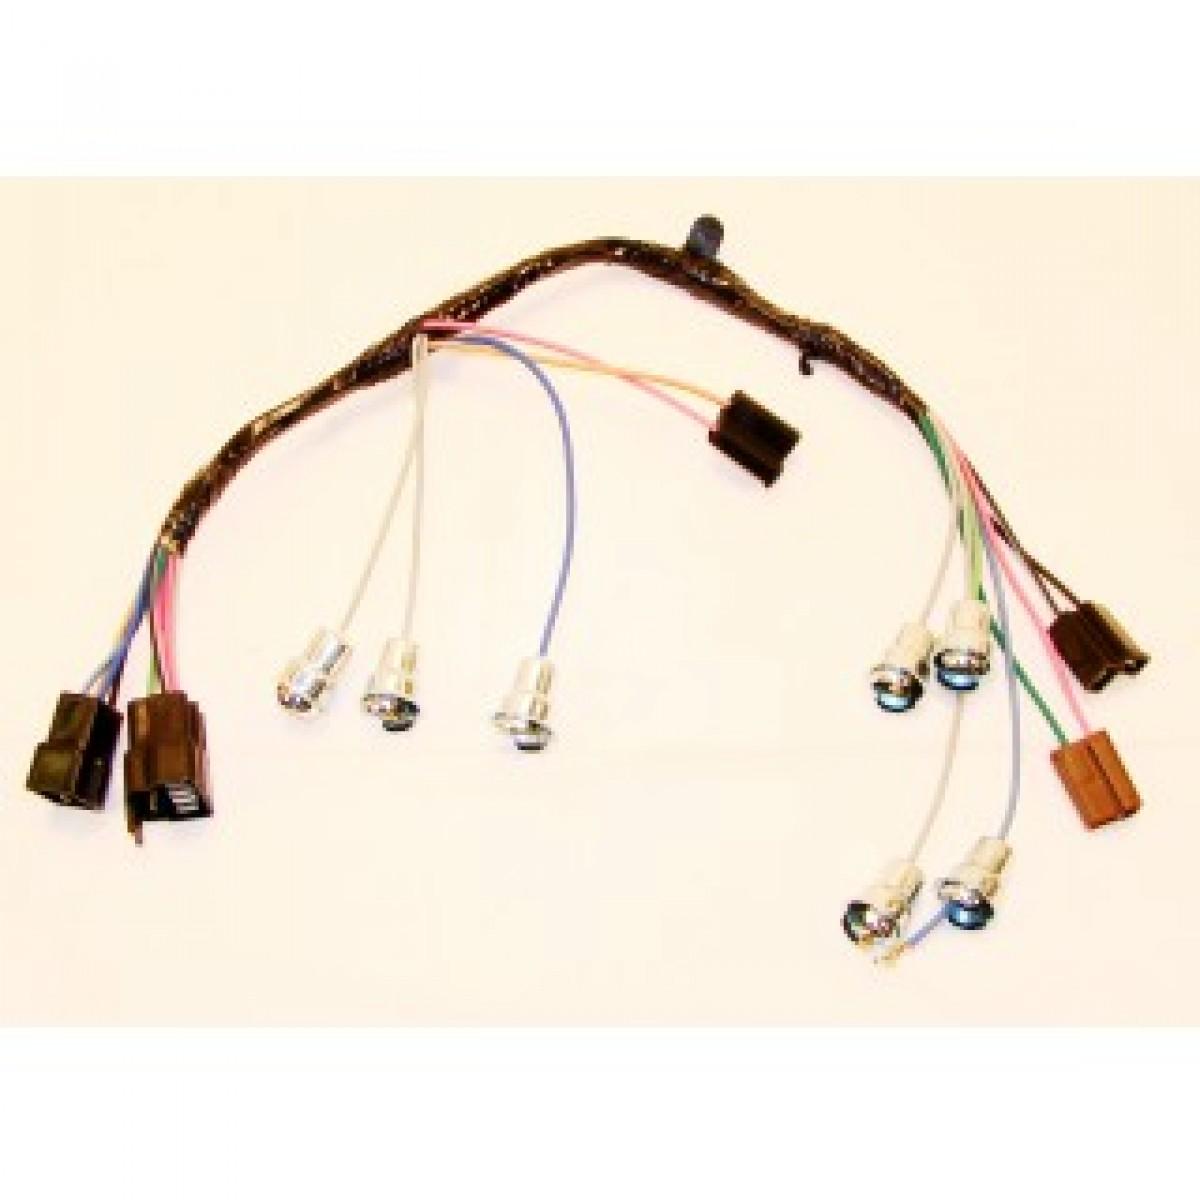 Wiring Harness For 1966 Gmc Diagram Libraries Chevy Nova 1964 C10 Electrical Dash Wires Truck1964